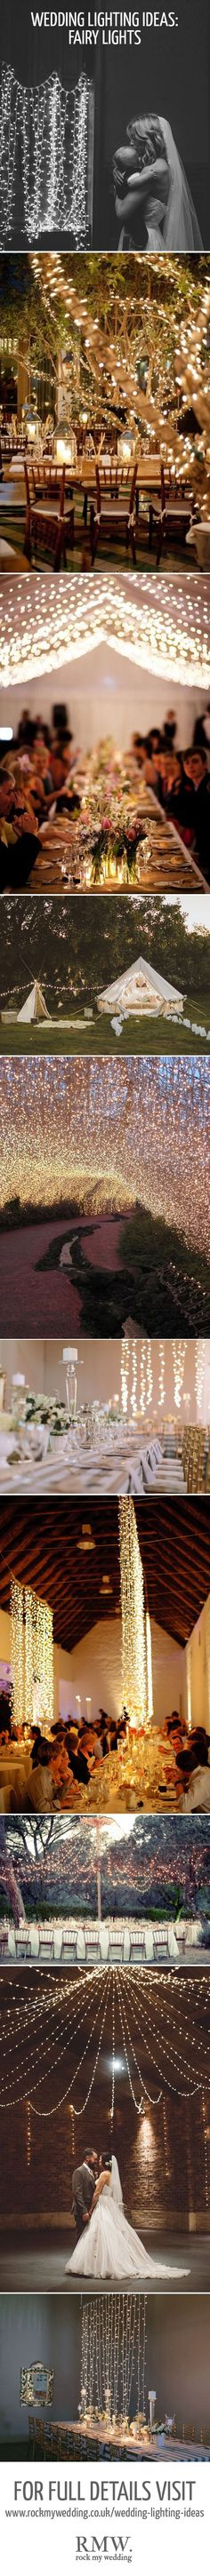 Fairy Light Inspiration For Wedding | http://www.rockmywedding.co.uk/gorgeous-lighting-ideas-wedding-day/